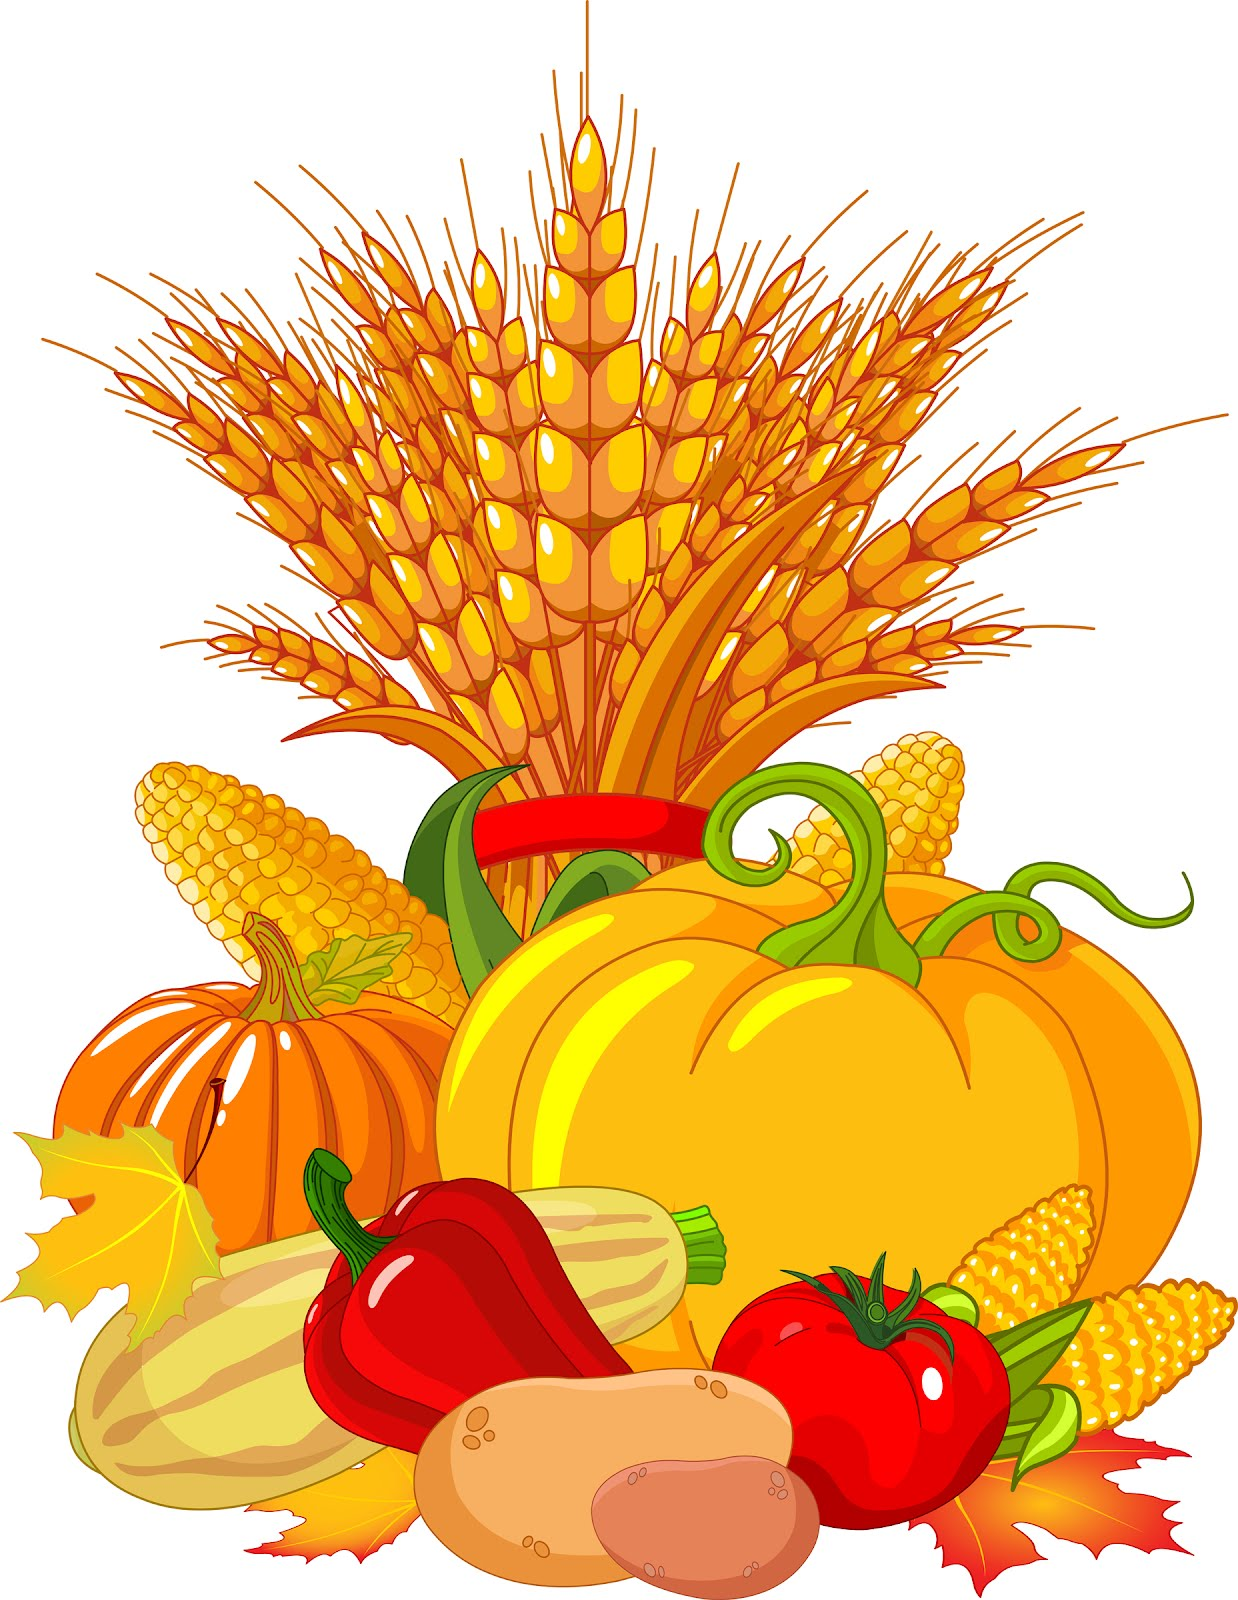 10 Harvest Festival Frees That You Can Download To clipart free image.